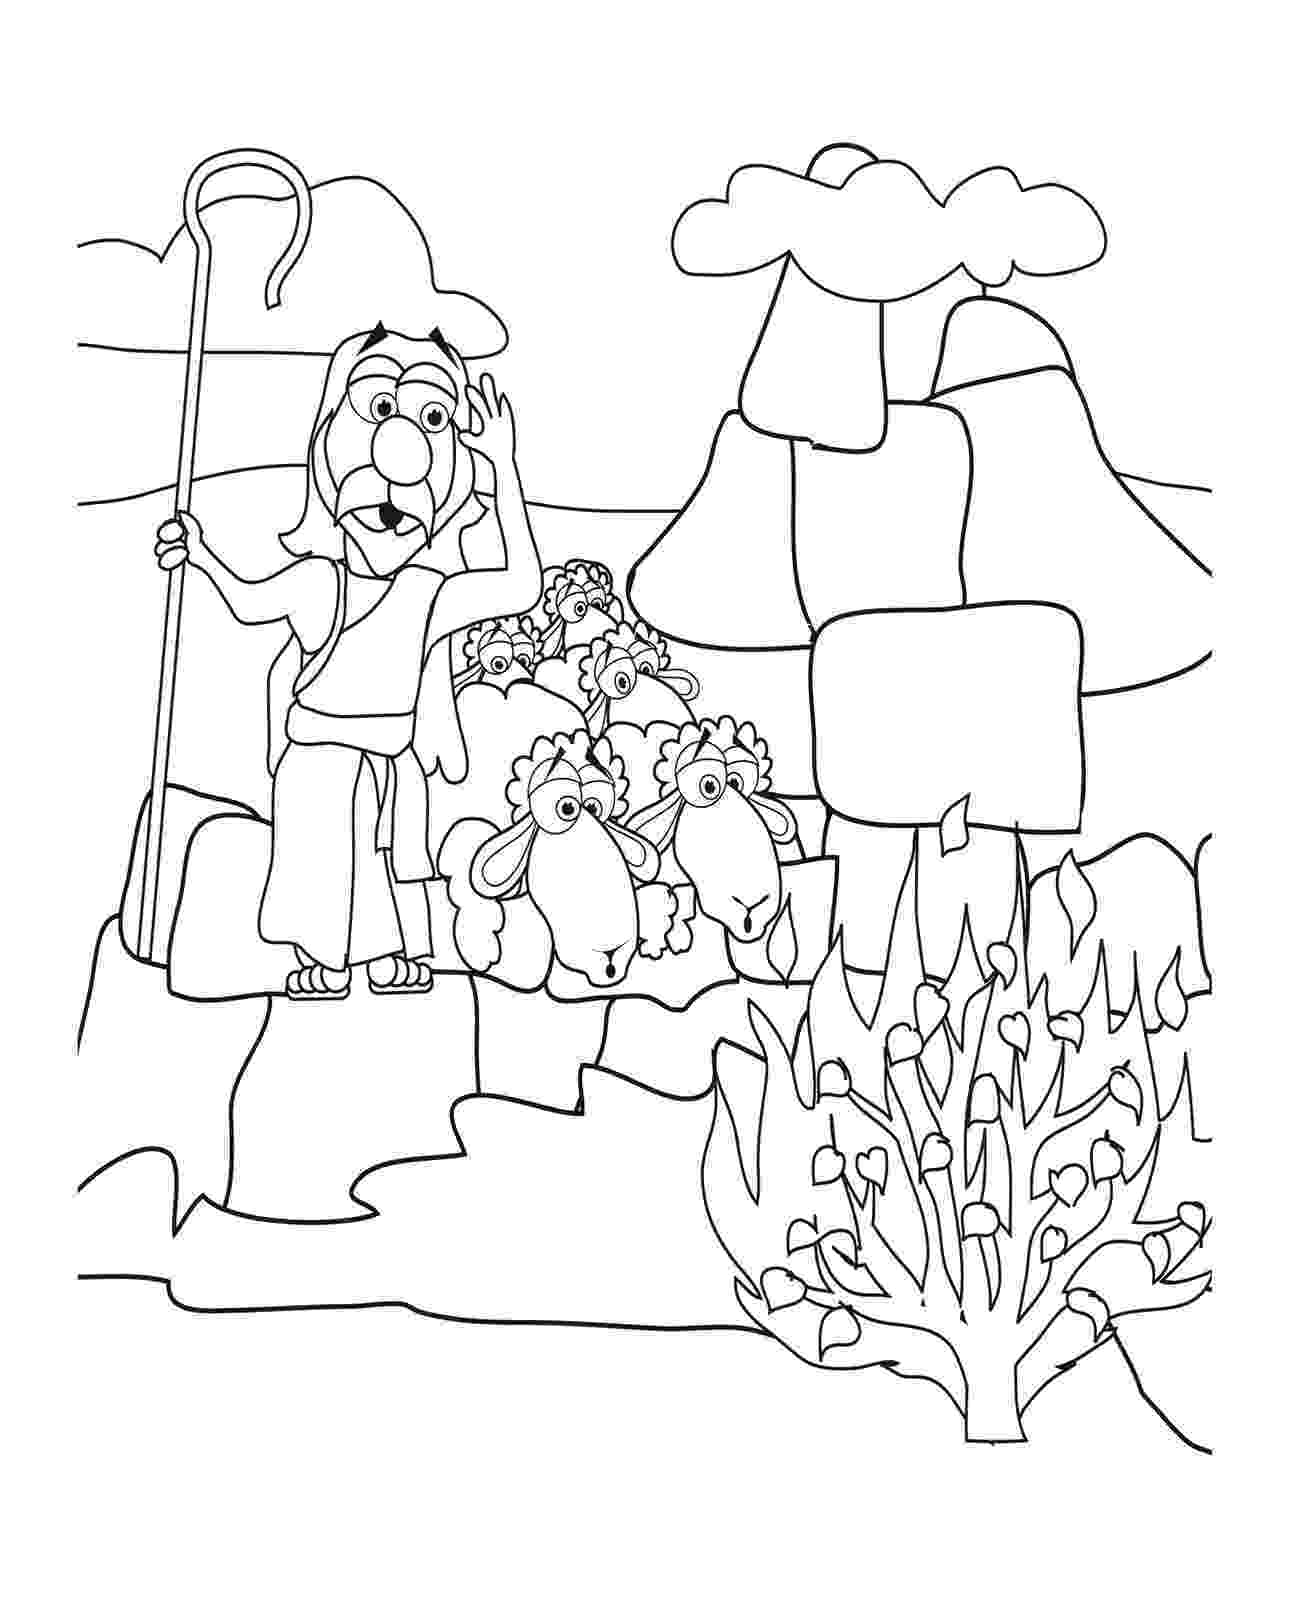 moses coloring pages mr biblehead moses and the nonburning bush exodus 3 coloring pages moses